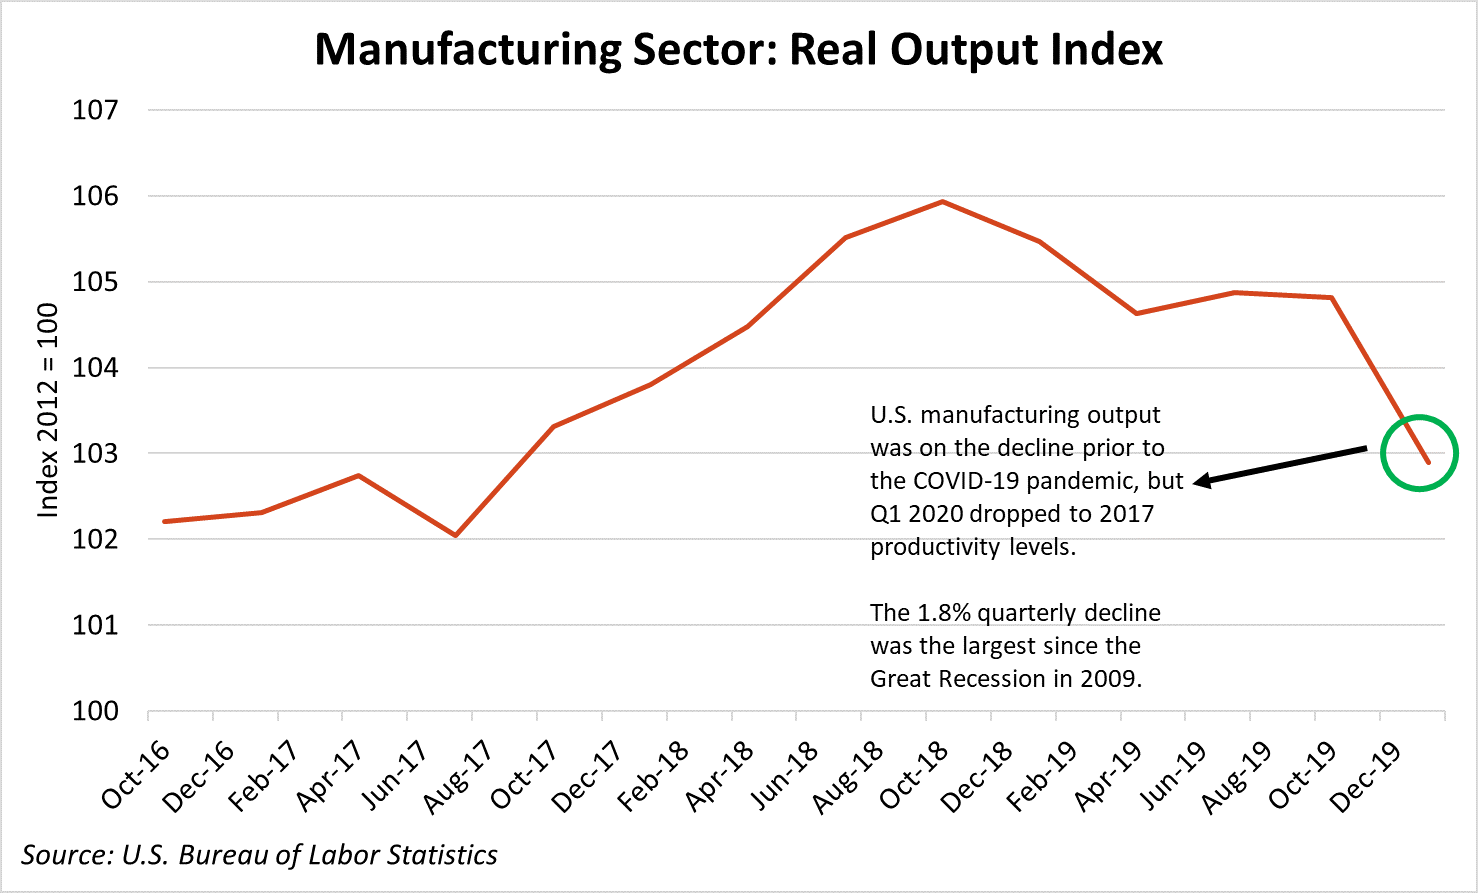 Real Output Index